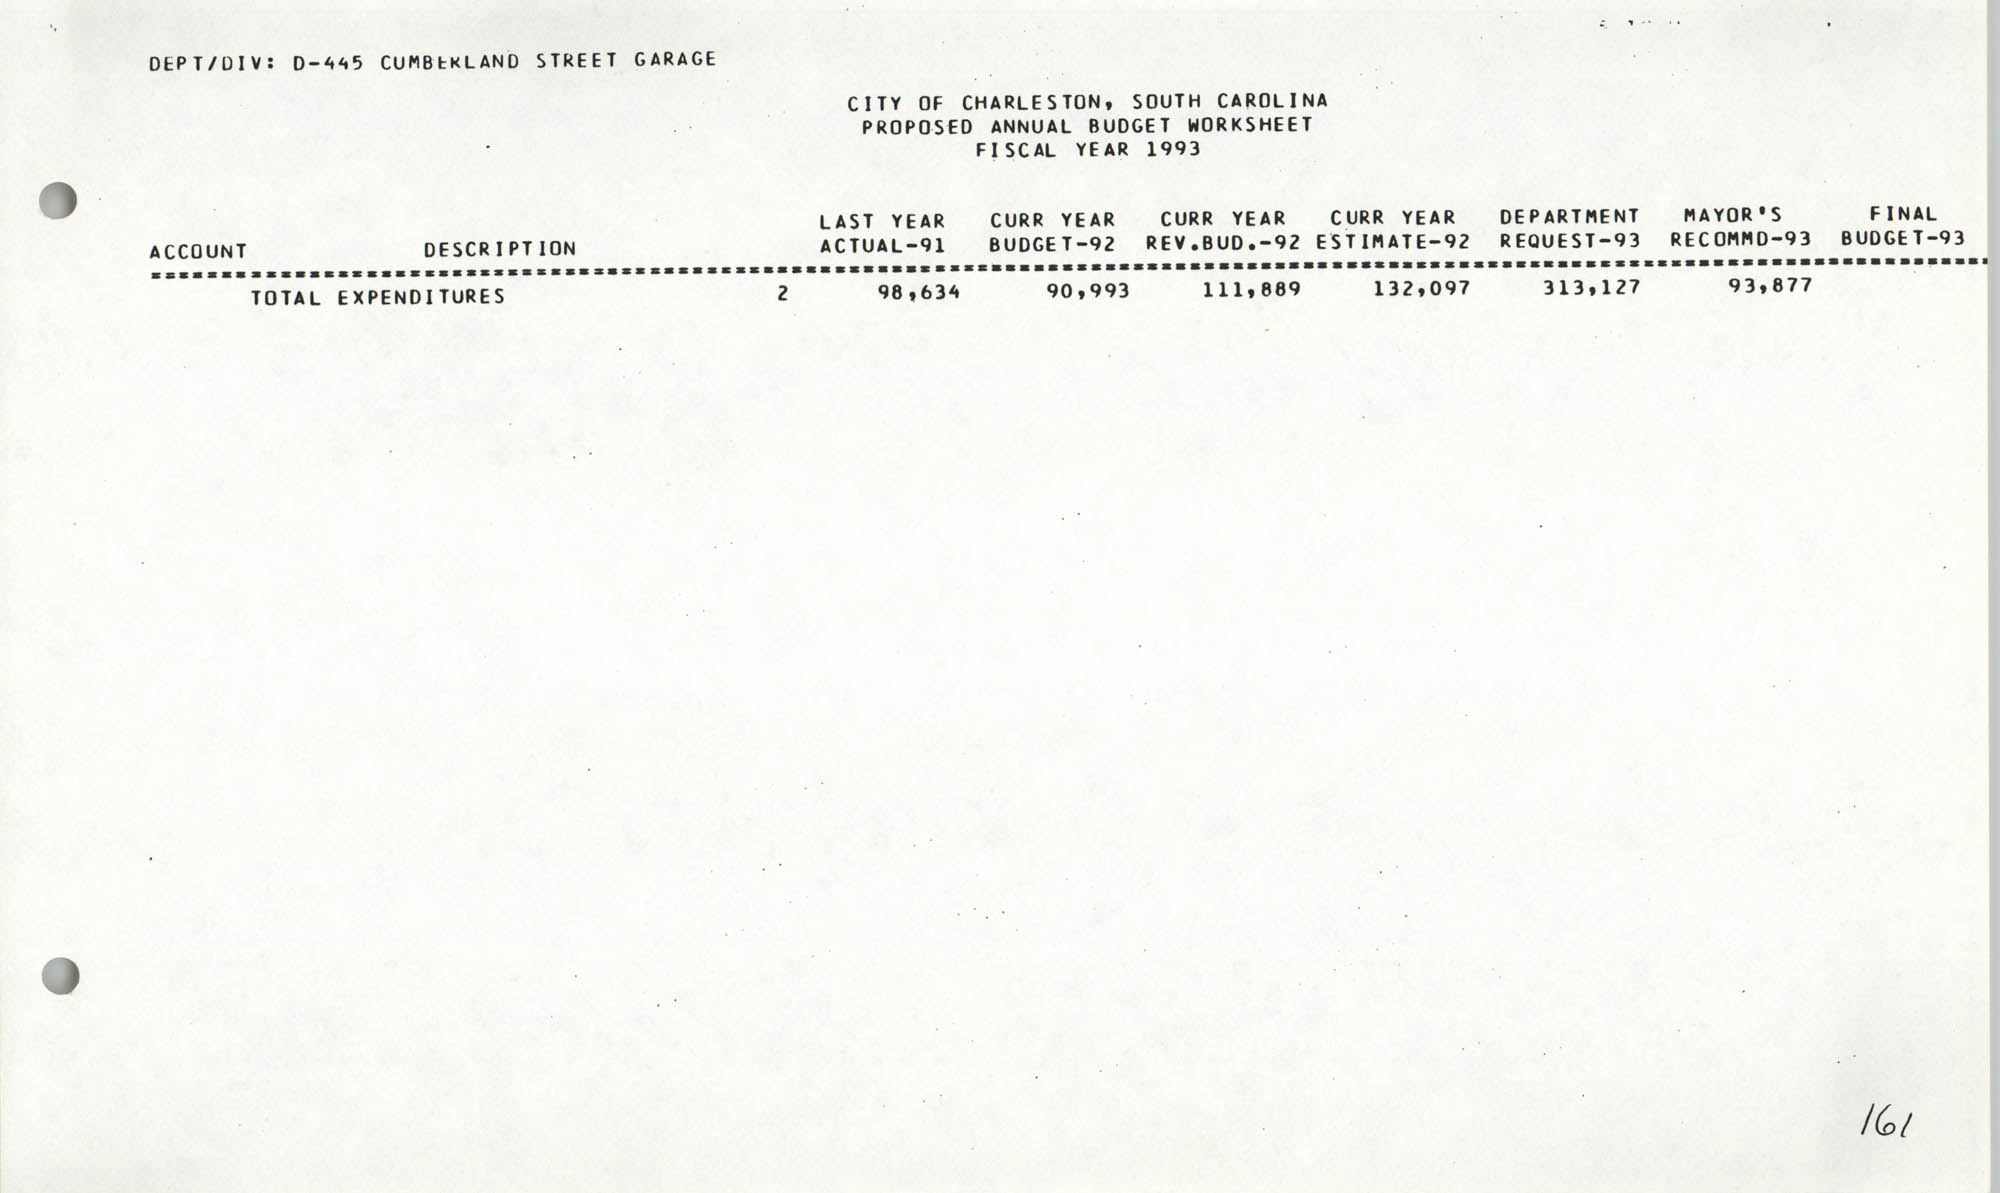 The City Council of Charleston, South Carolina, 1993 Budget, Page 161